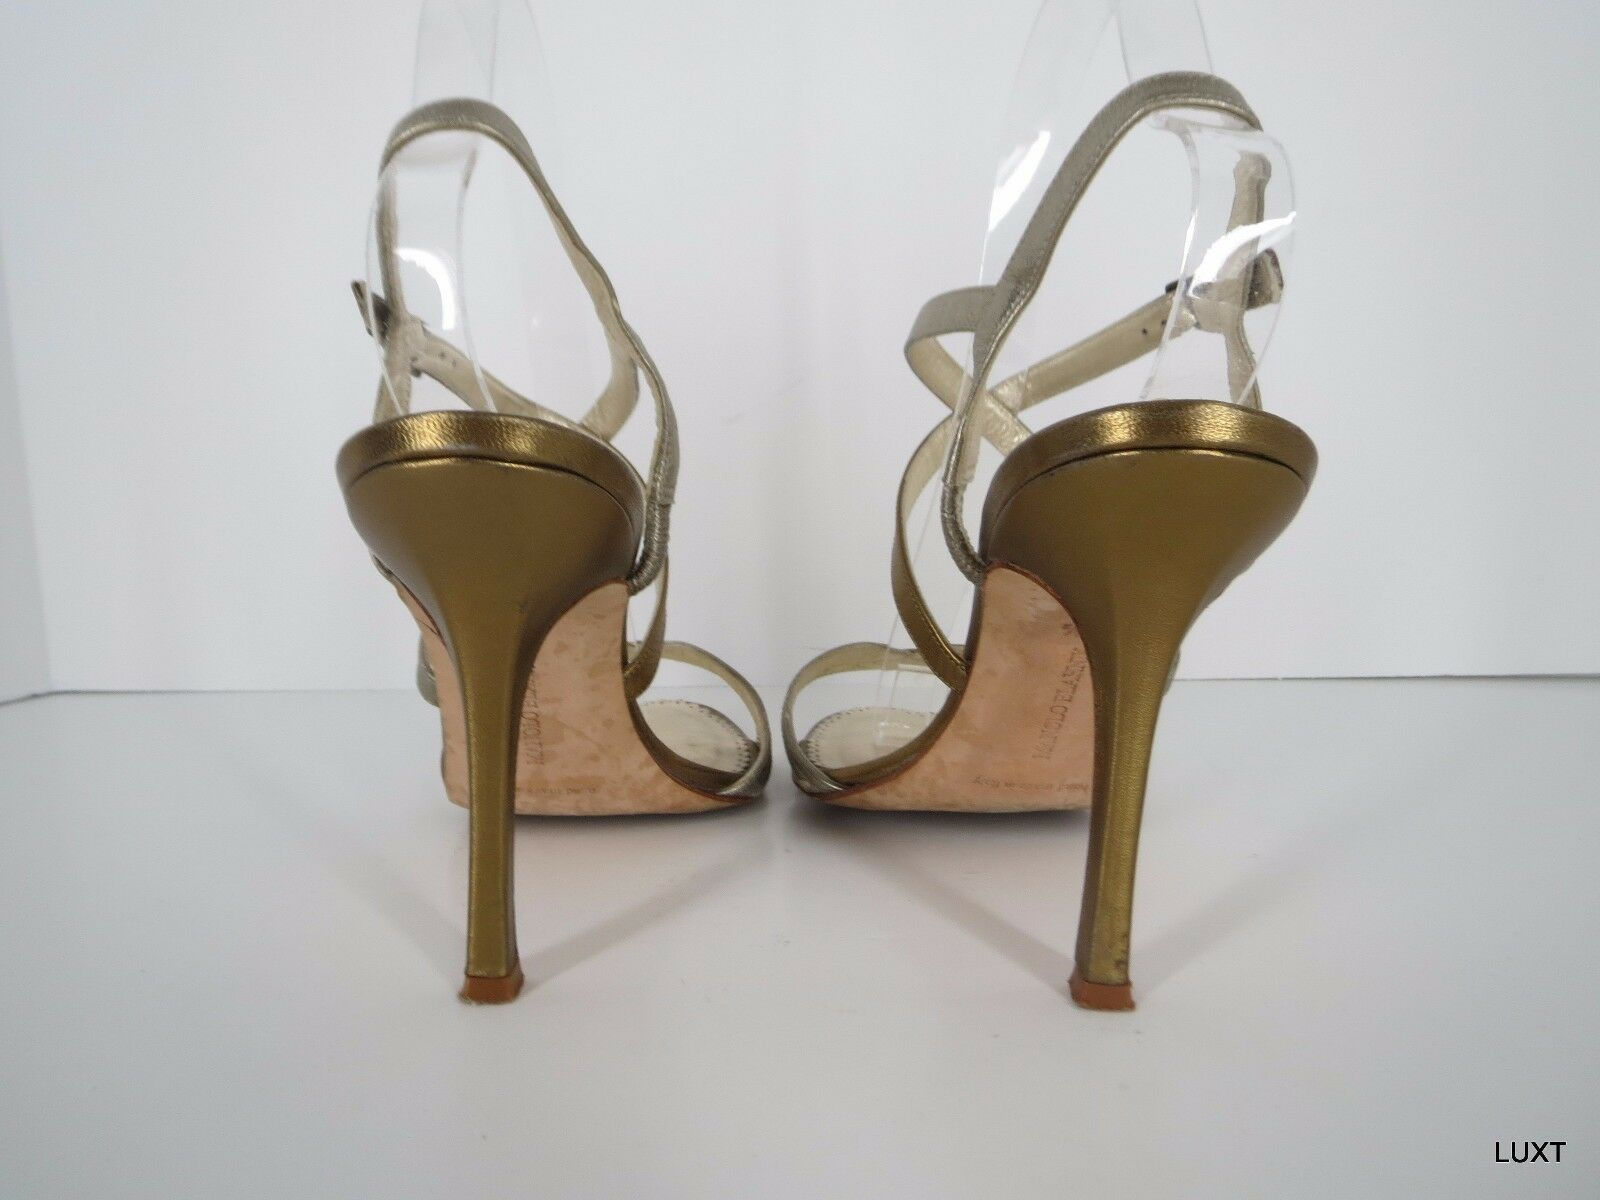 Manolo Blahnik Sandals Heels Größe 7.5 7.5 7.5 37.5 Gold Silber Metallic Strappy Open Toe a99a47